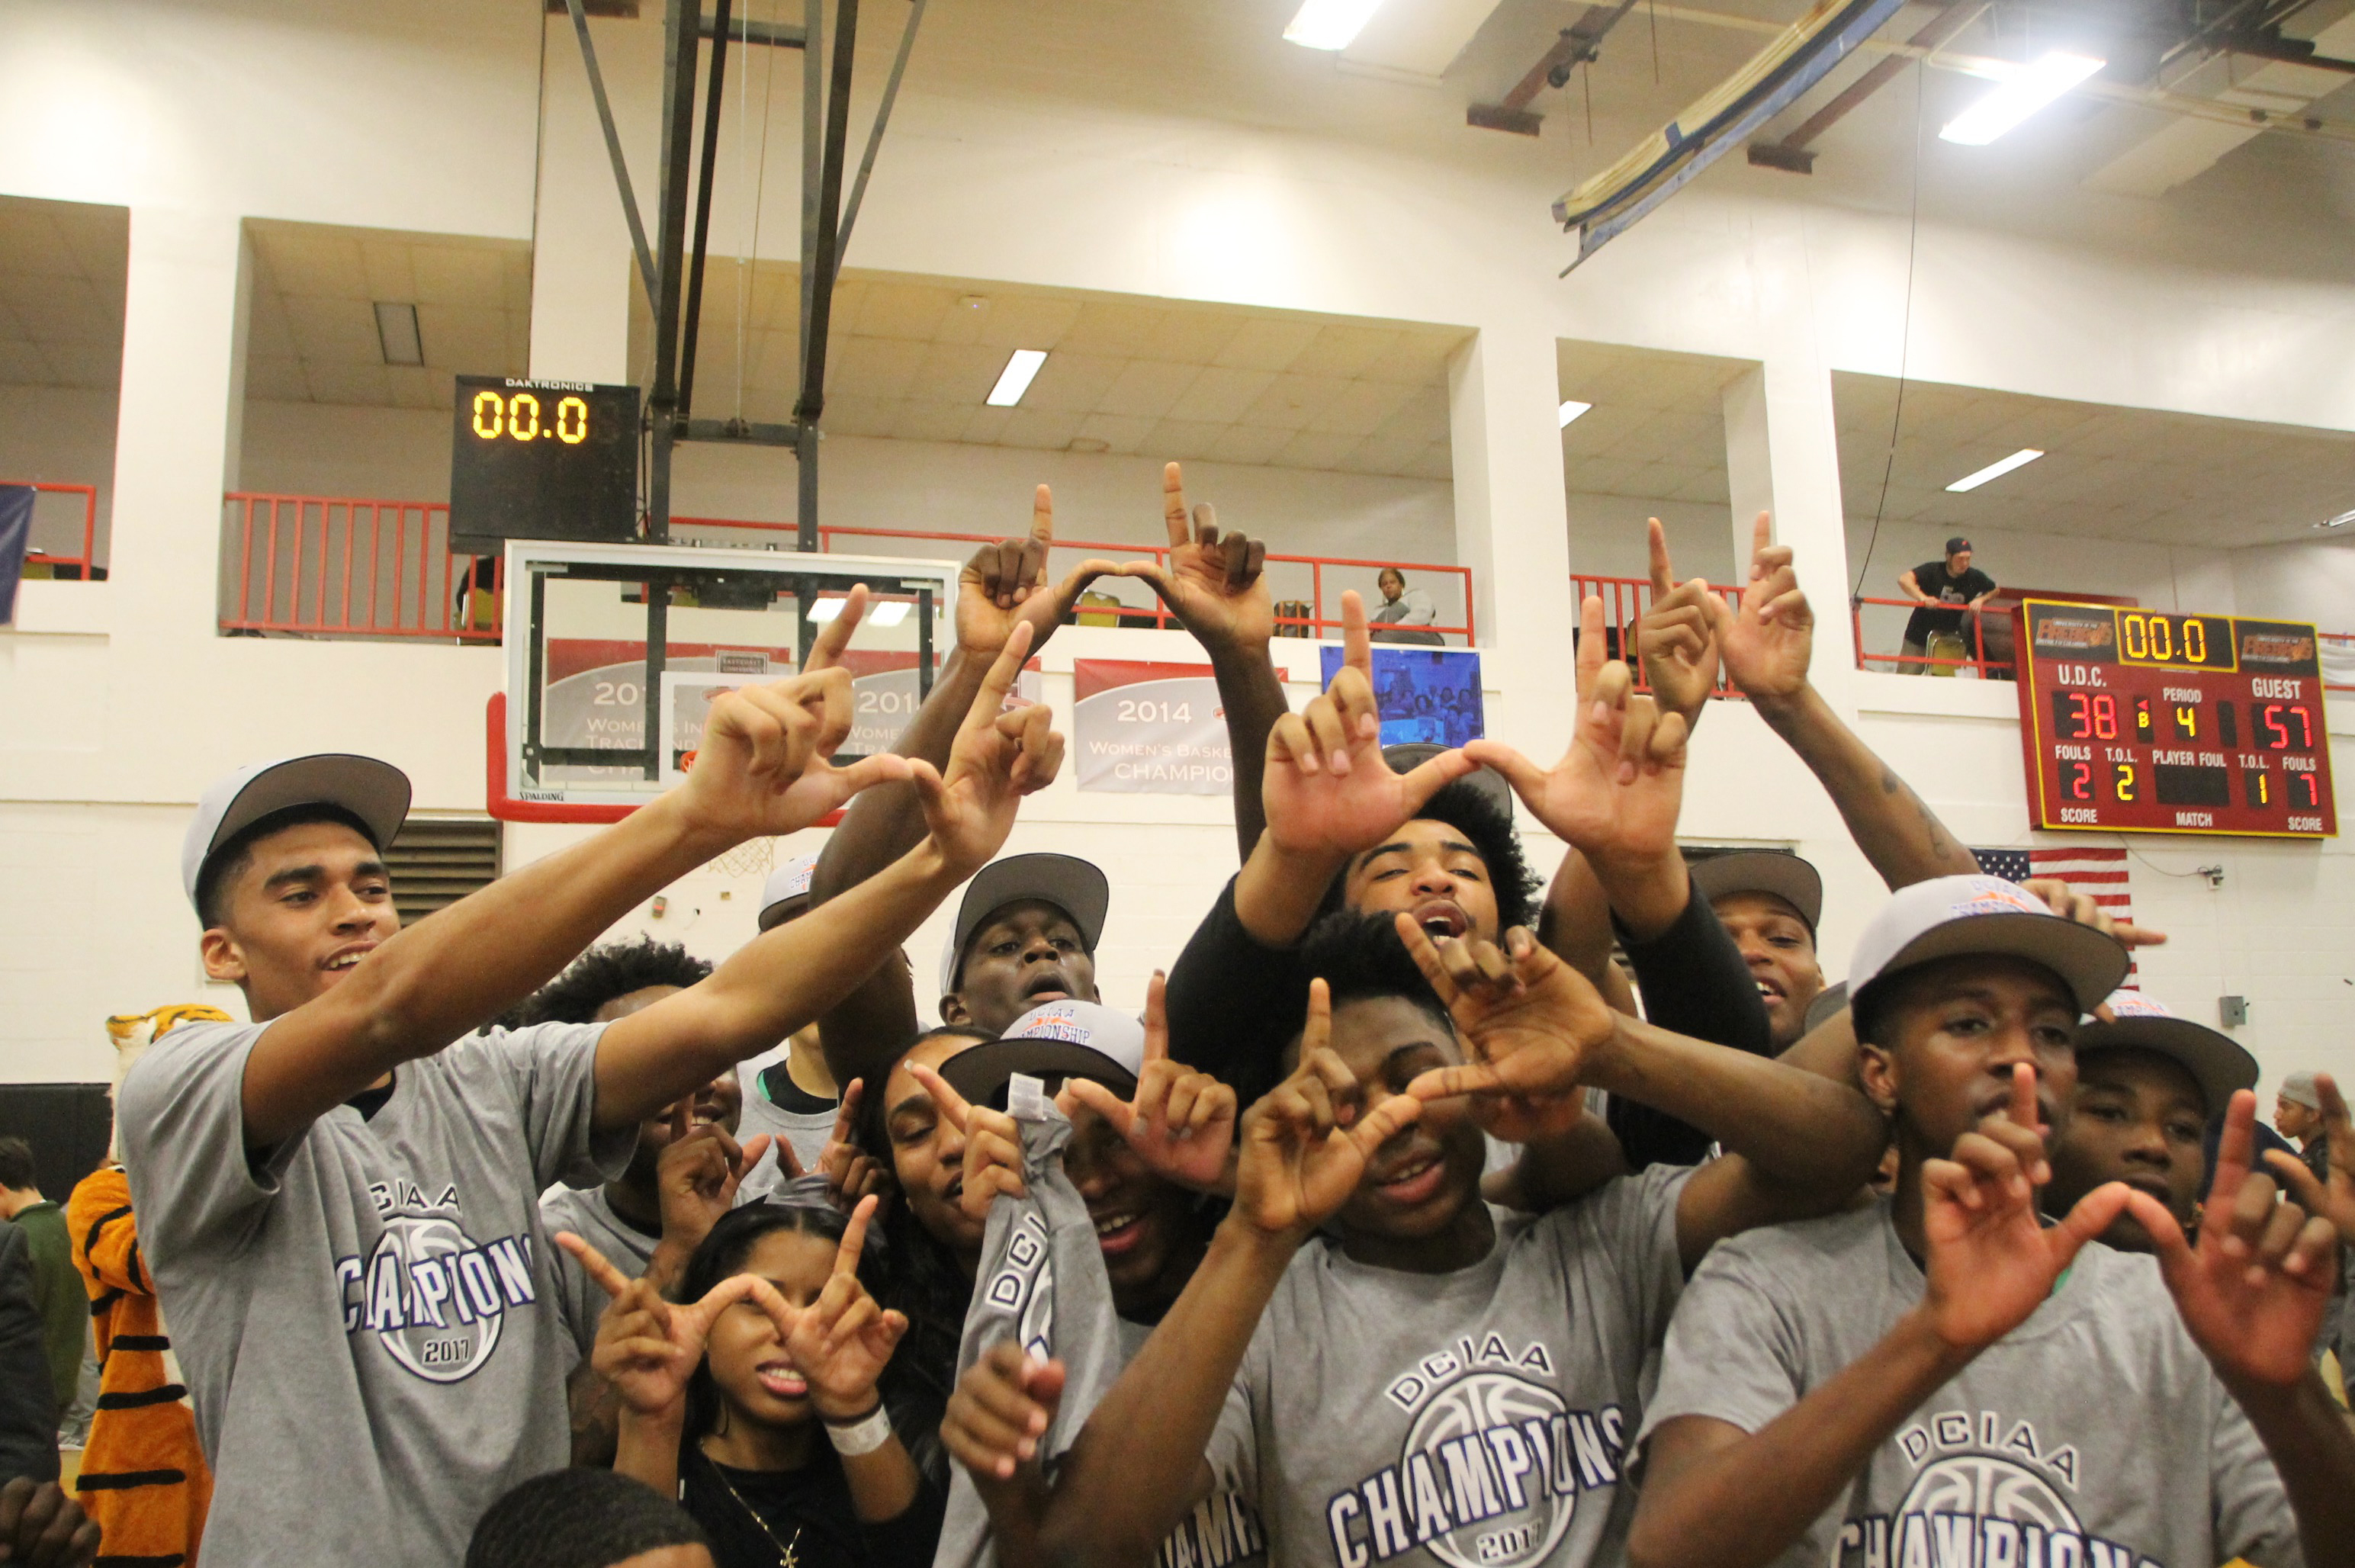 For the first time in 33 years, the DCIAA title resides at Wilson